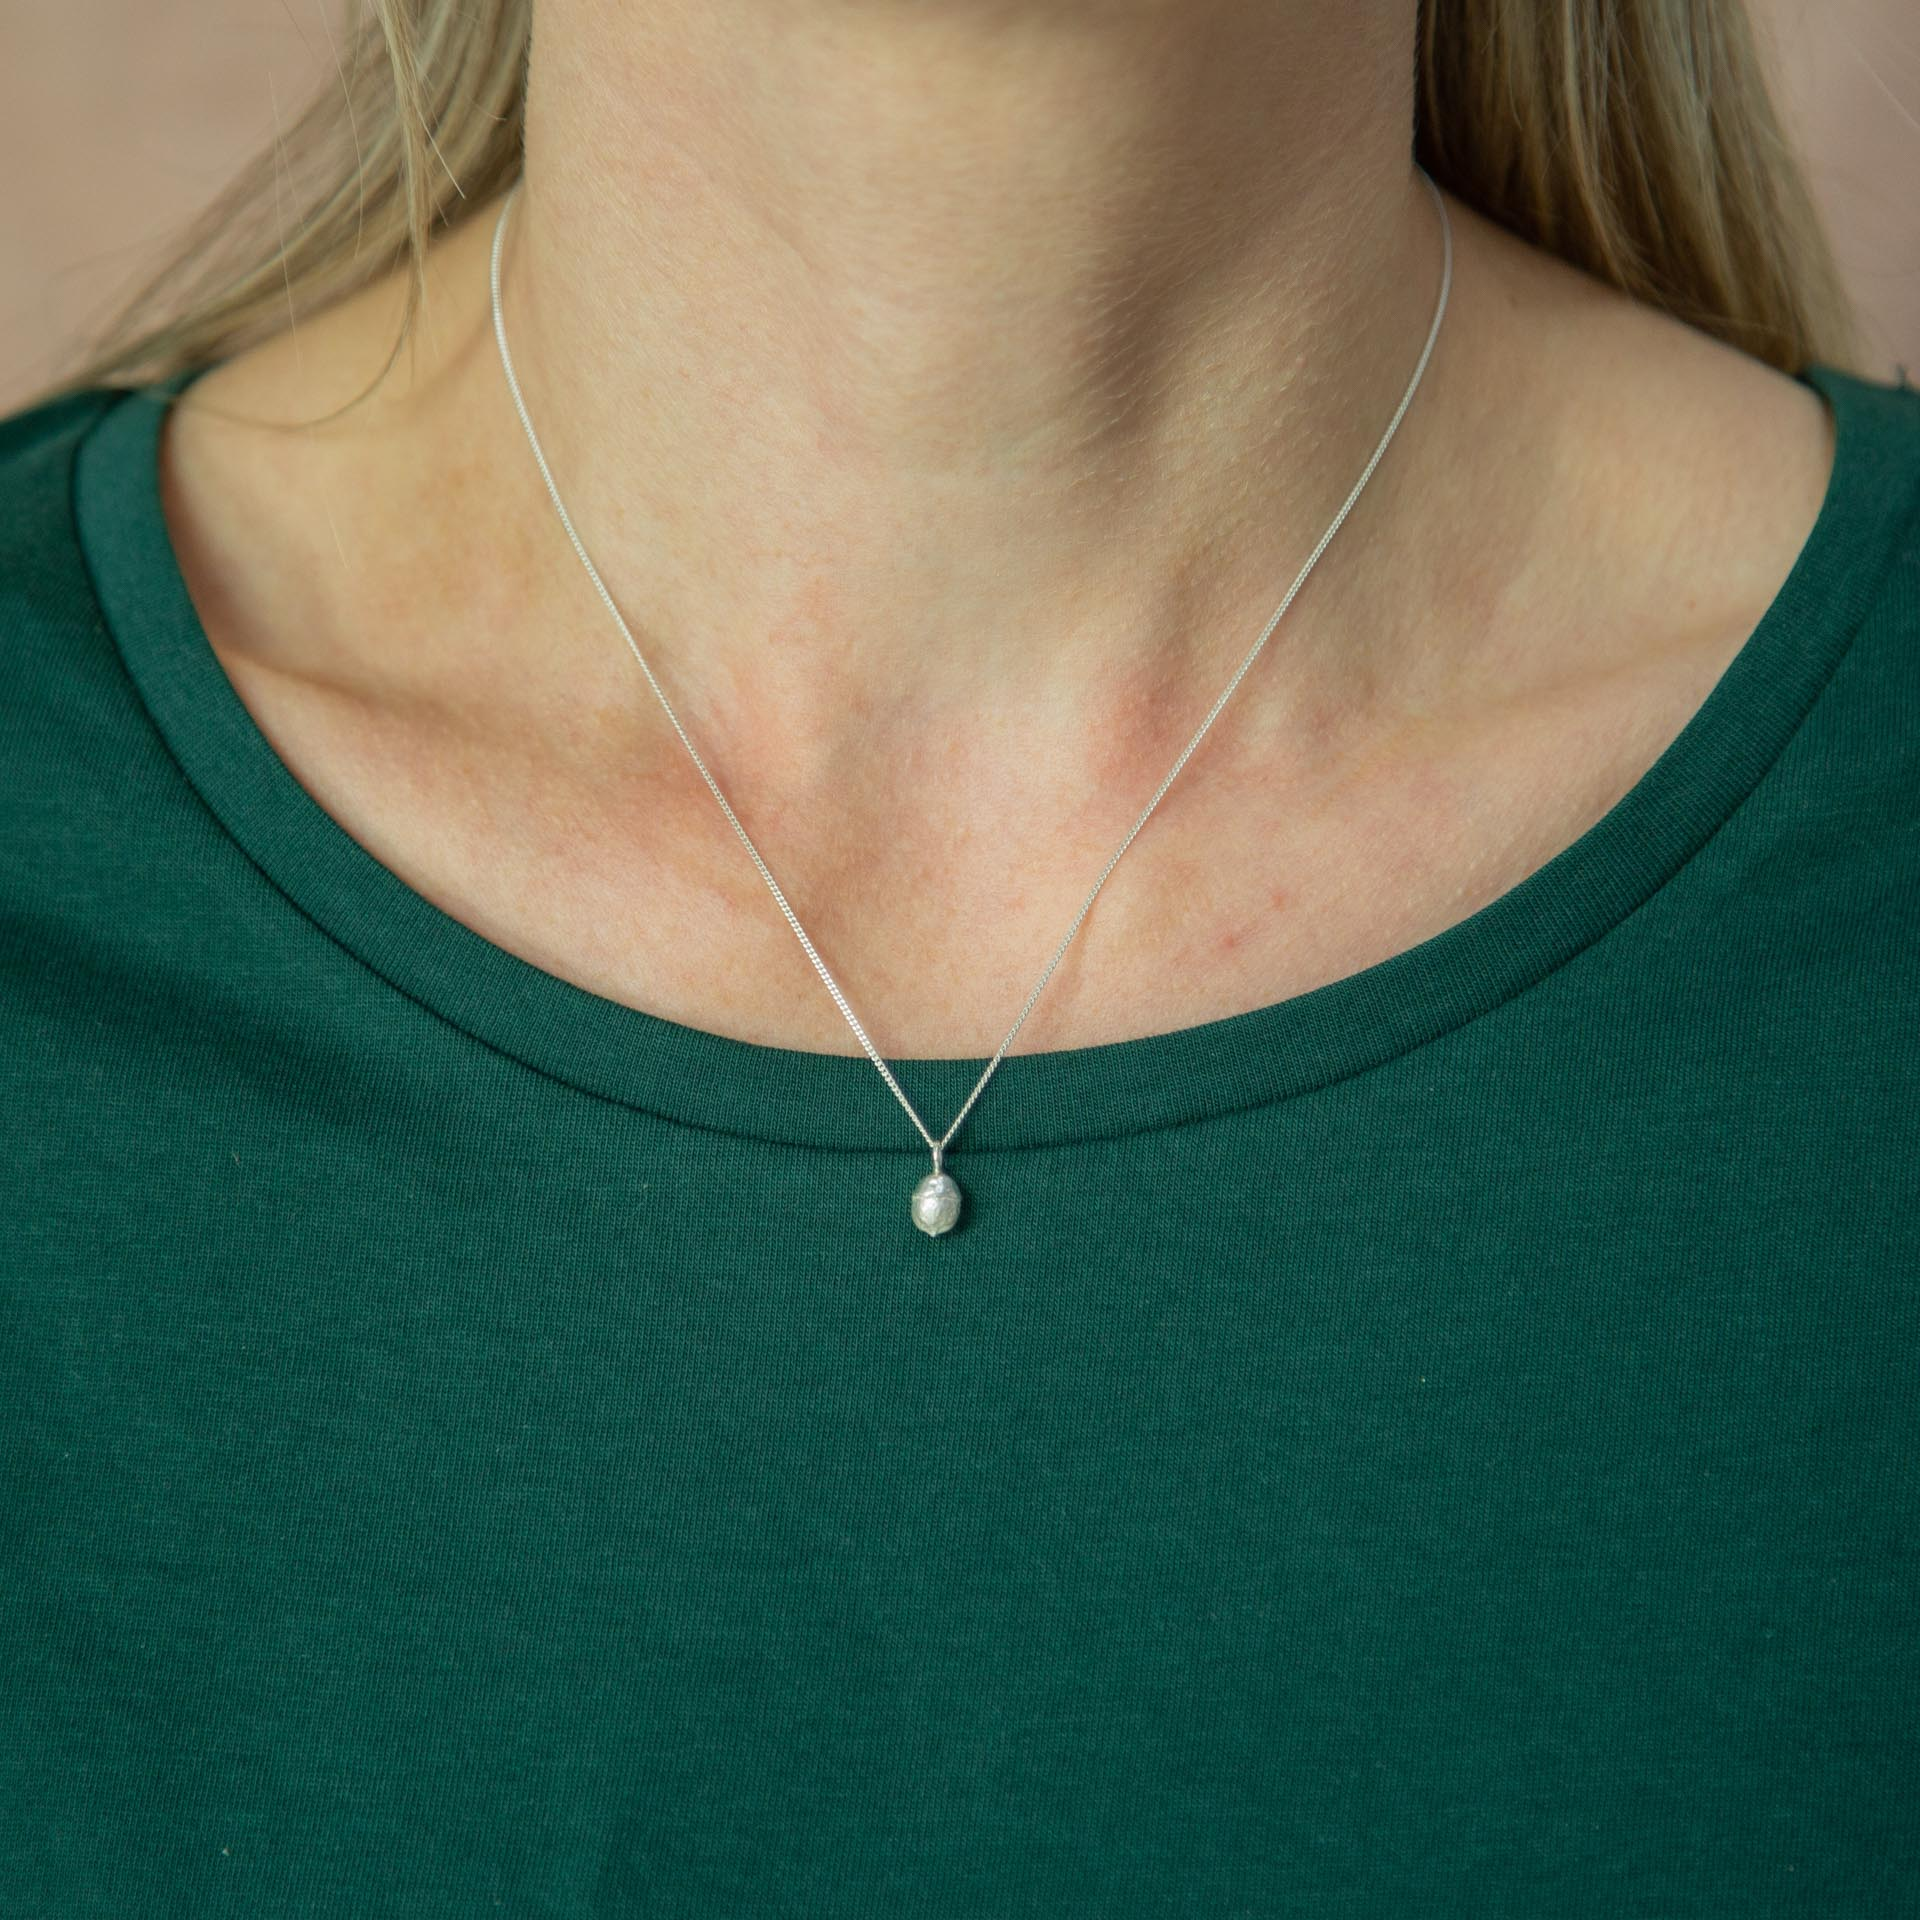 yew berry silver necklace modelled around neck on green tshirt